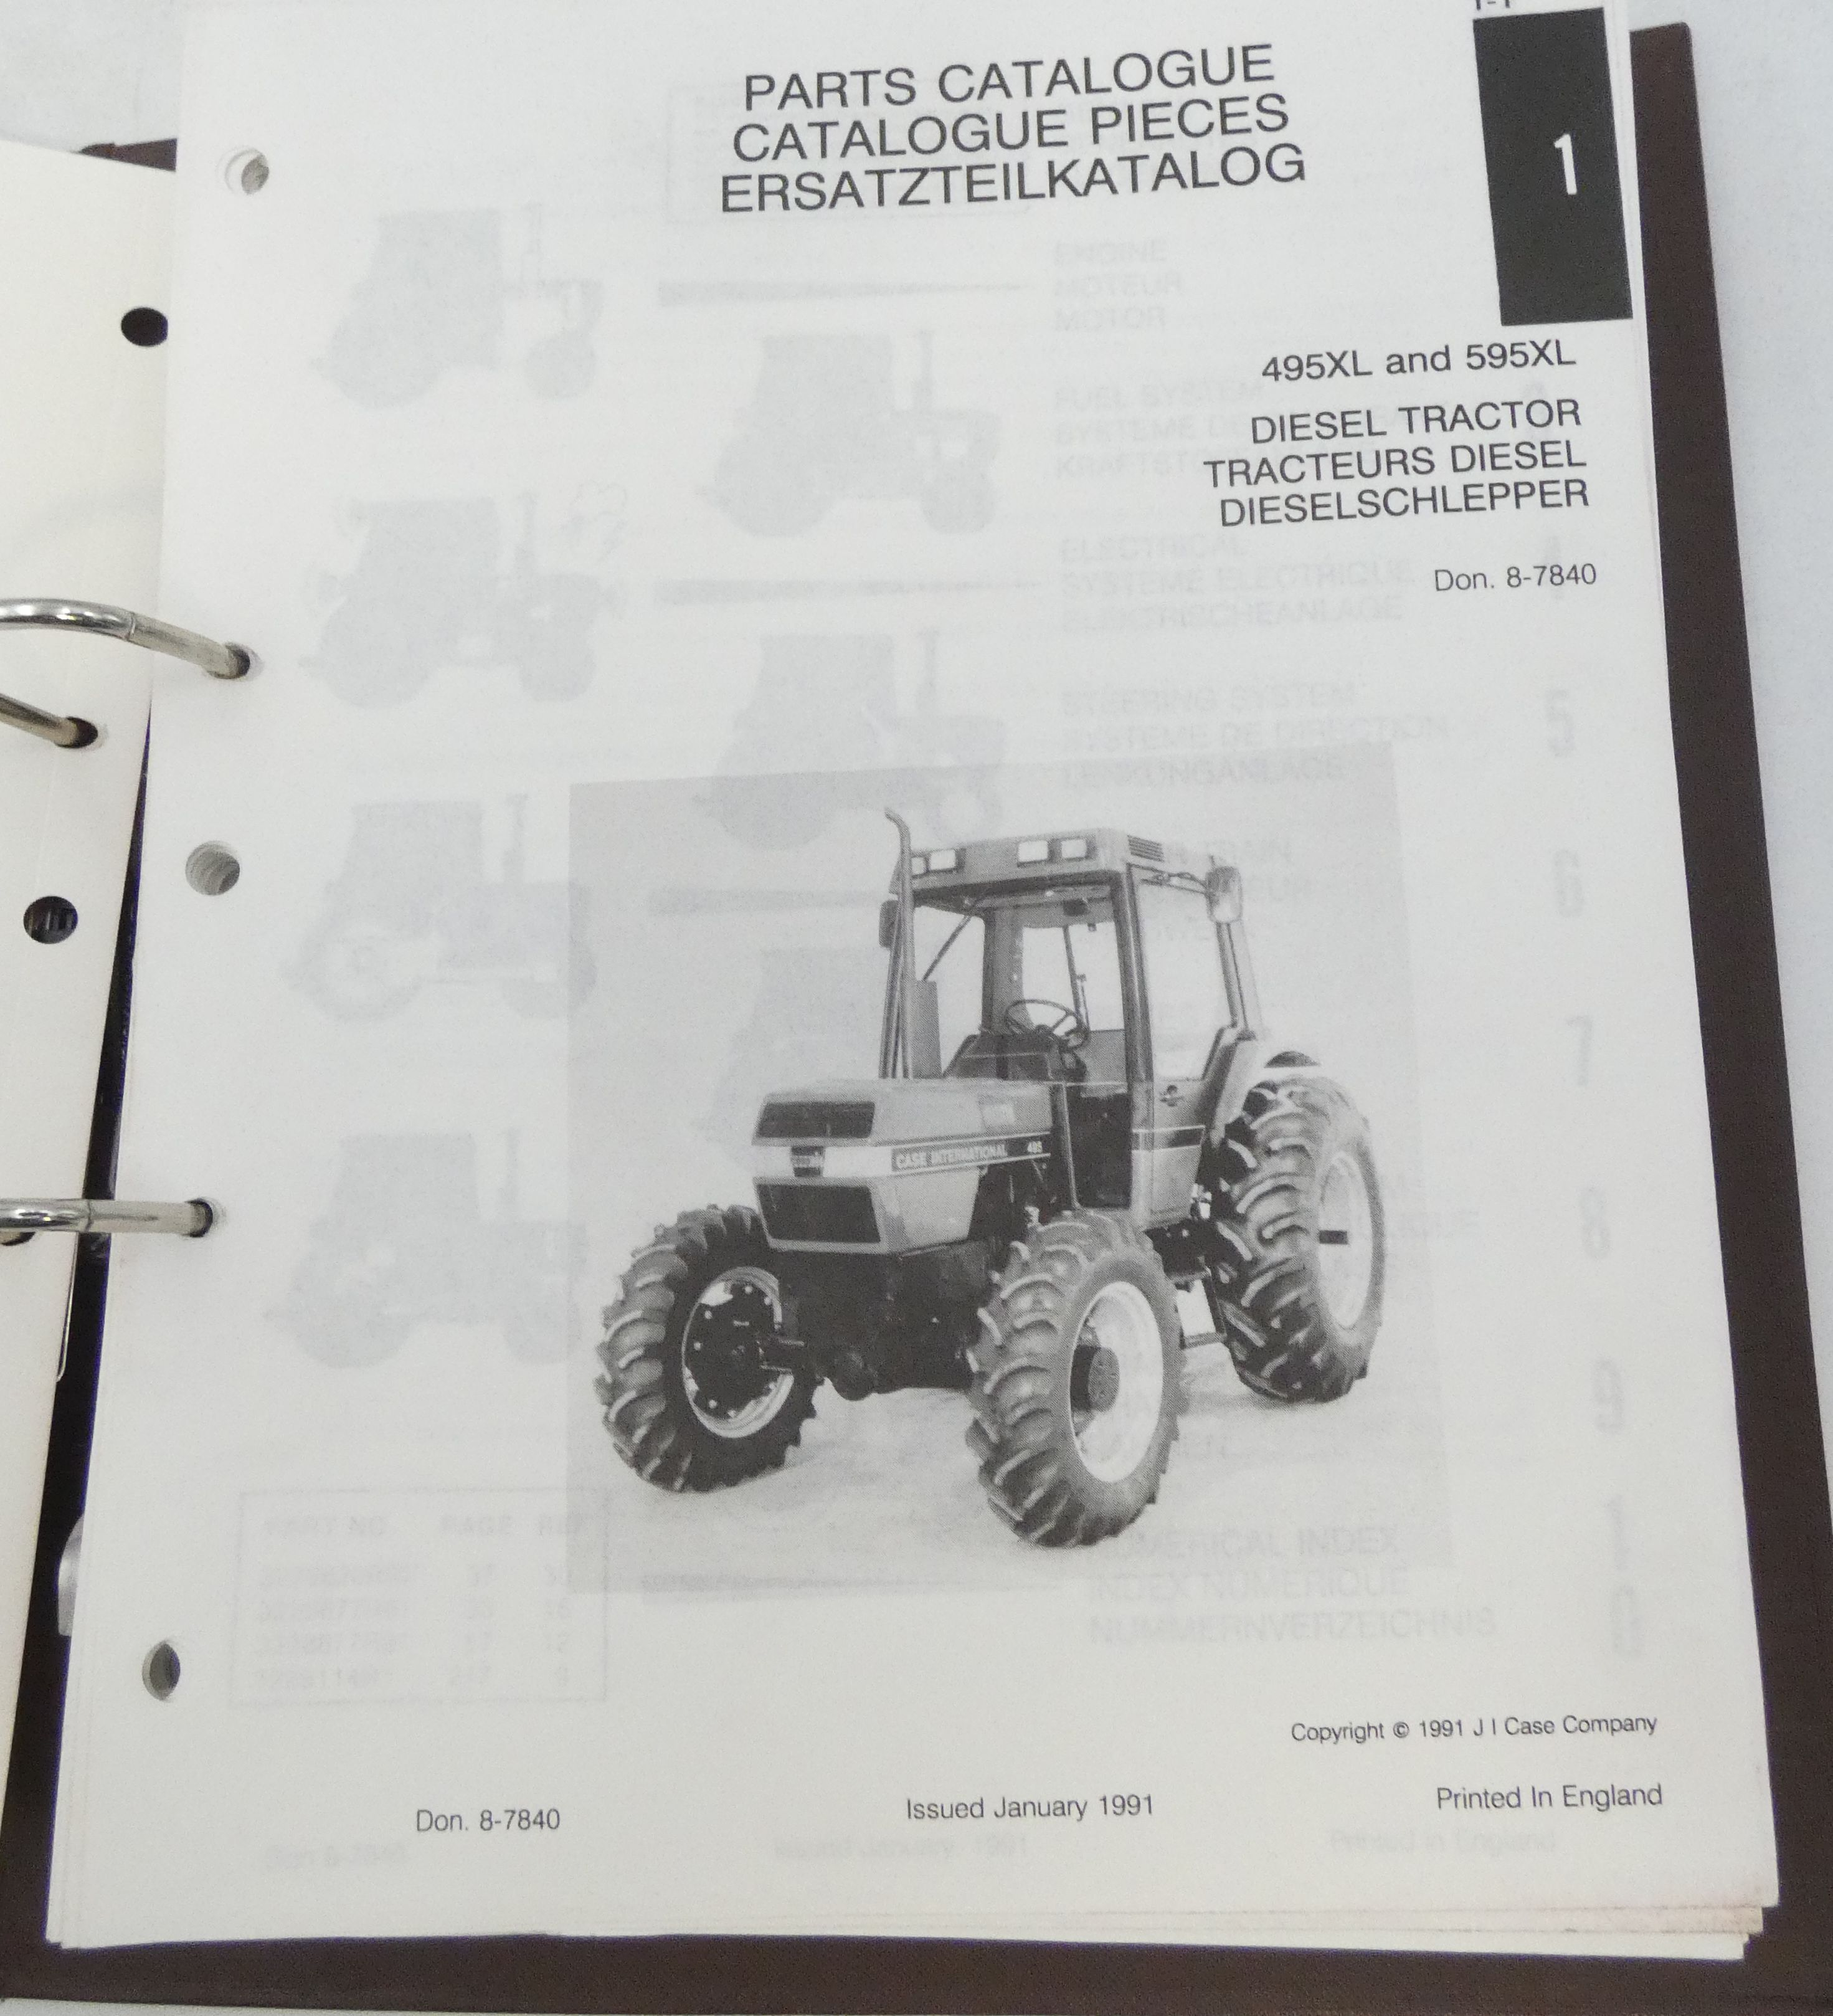 Case International 495XL and 595XL diesel tractor parts catalogue